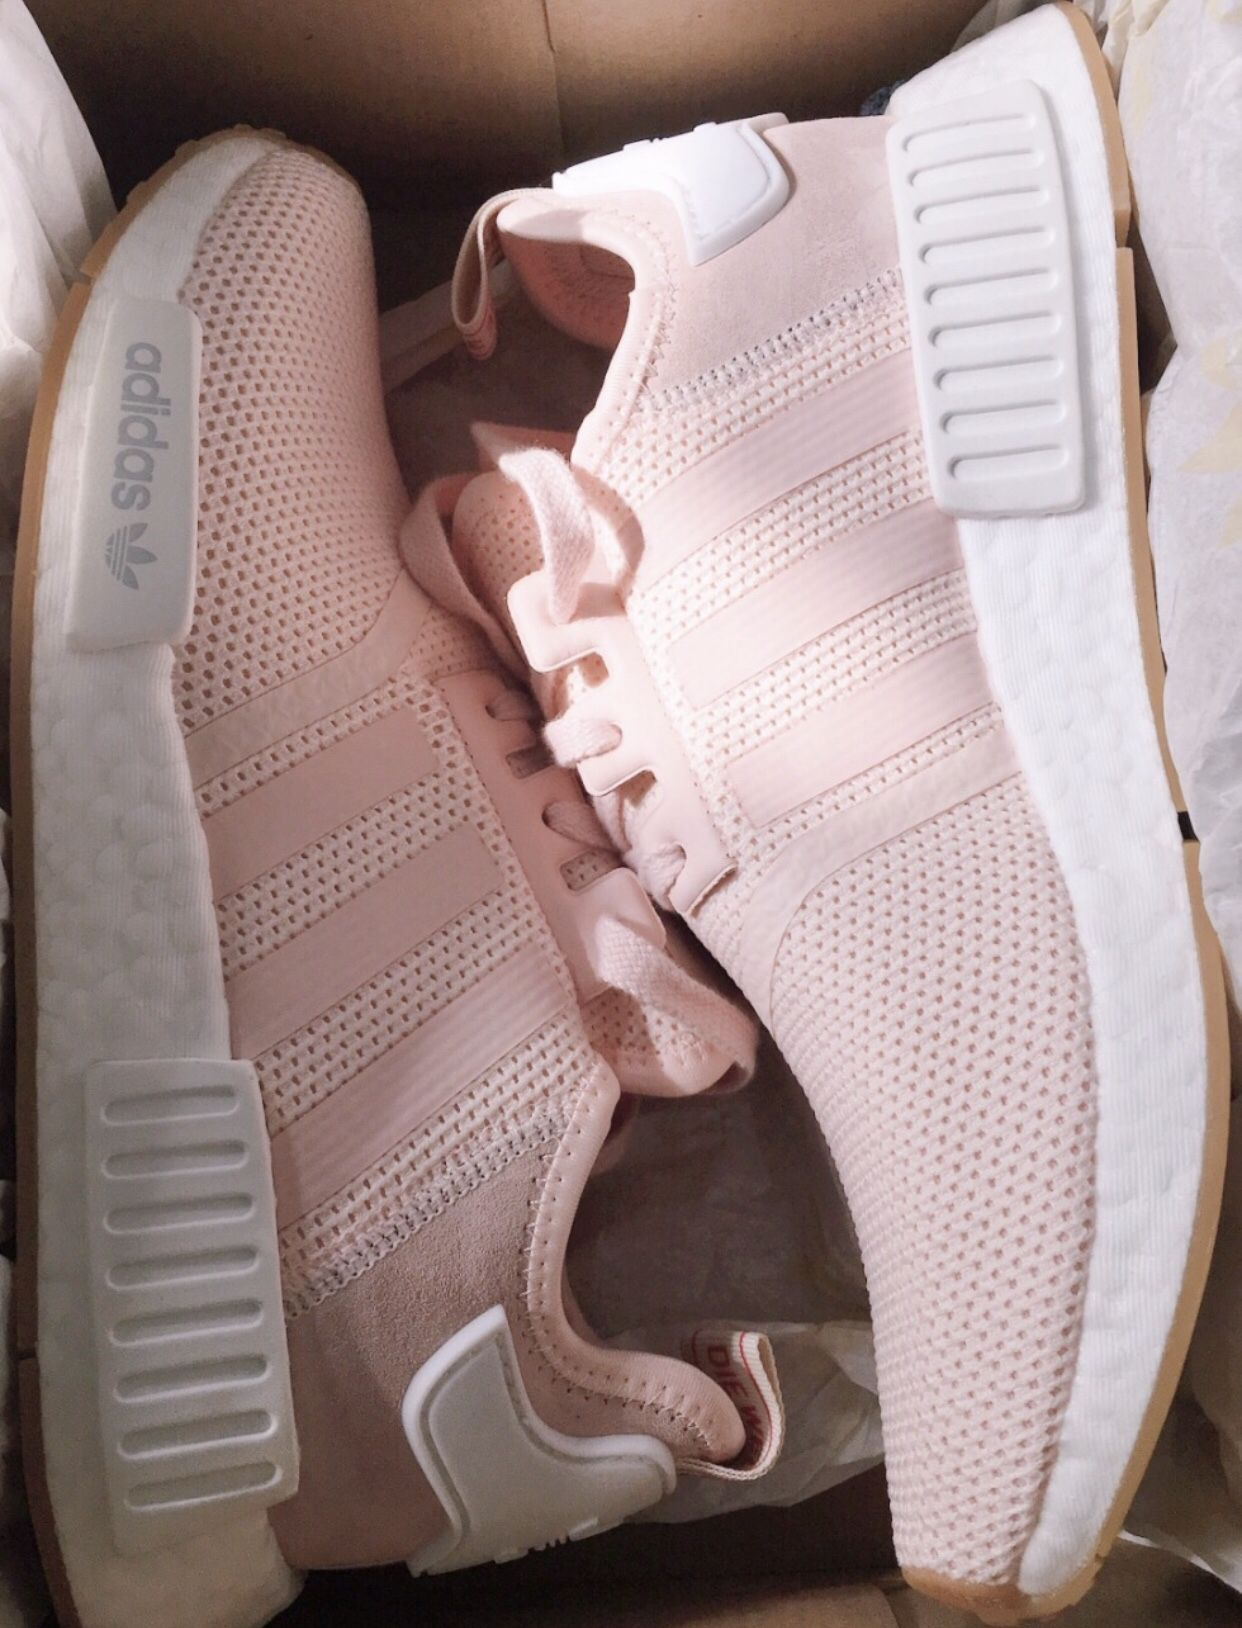 Pin by Ashley Brown on Shoes in 2019 | Shoes, Sneakers, Adidas